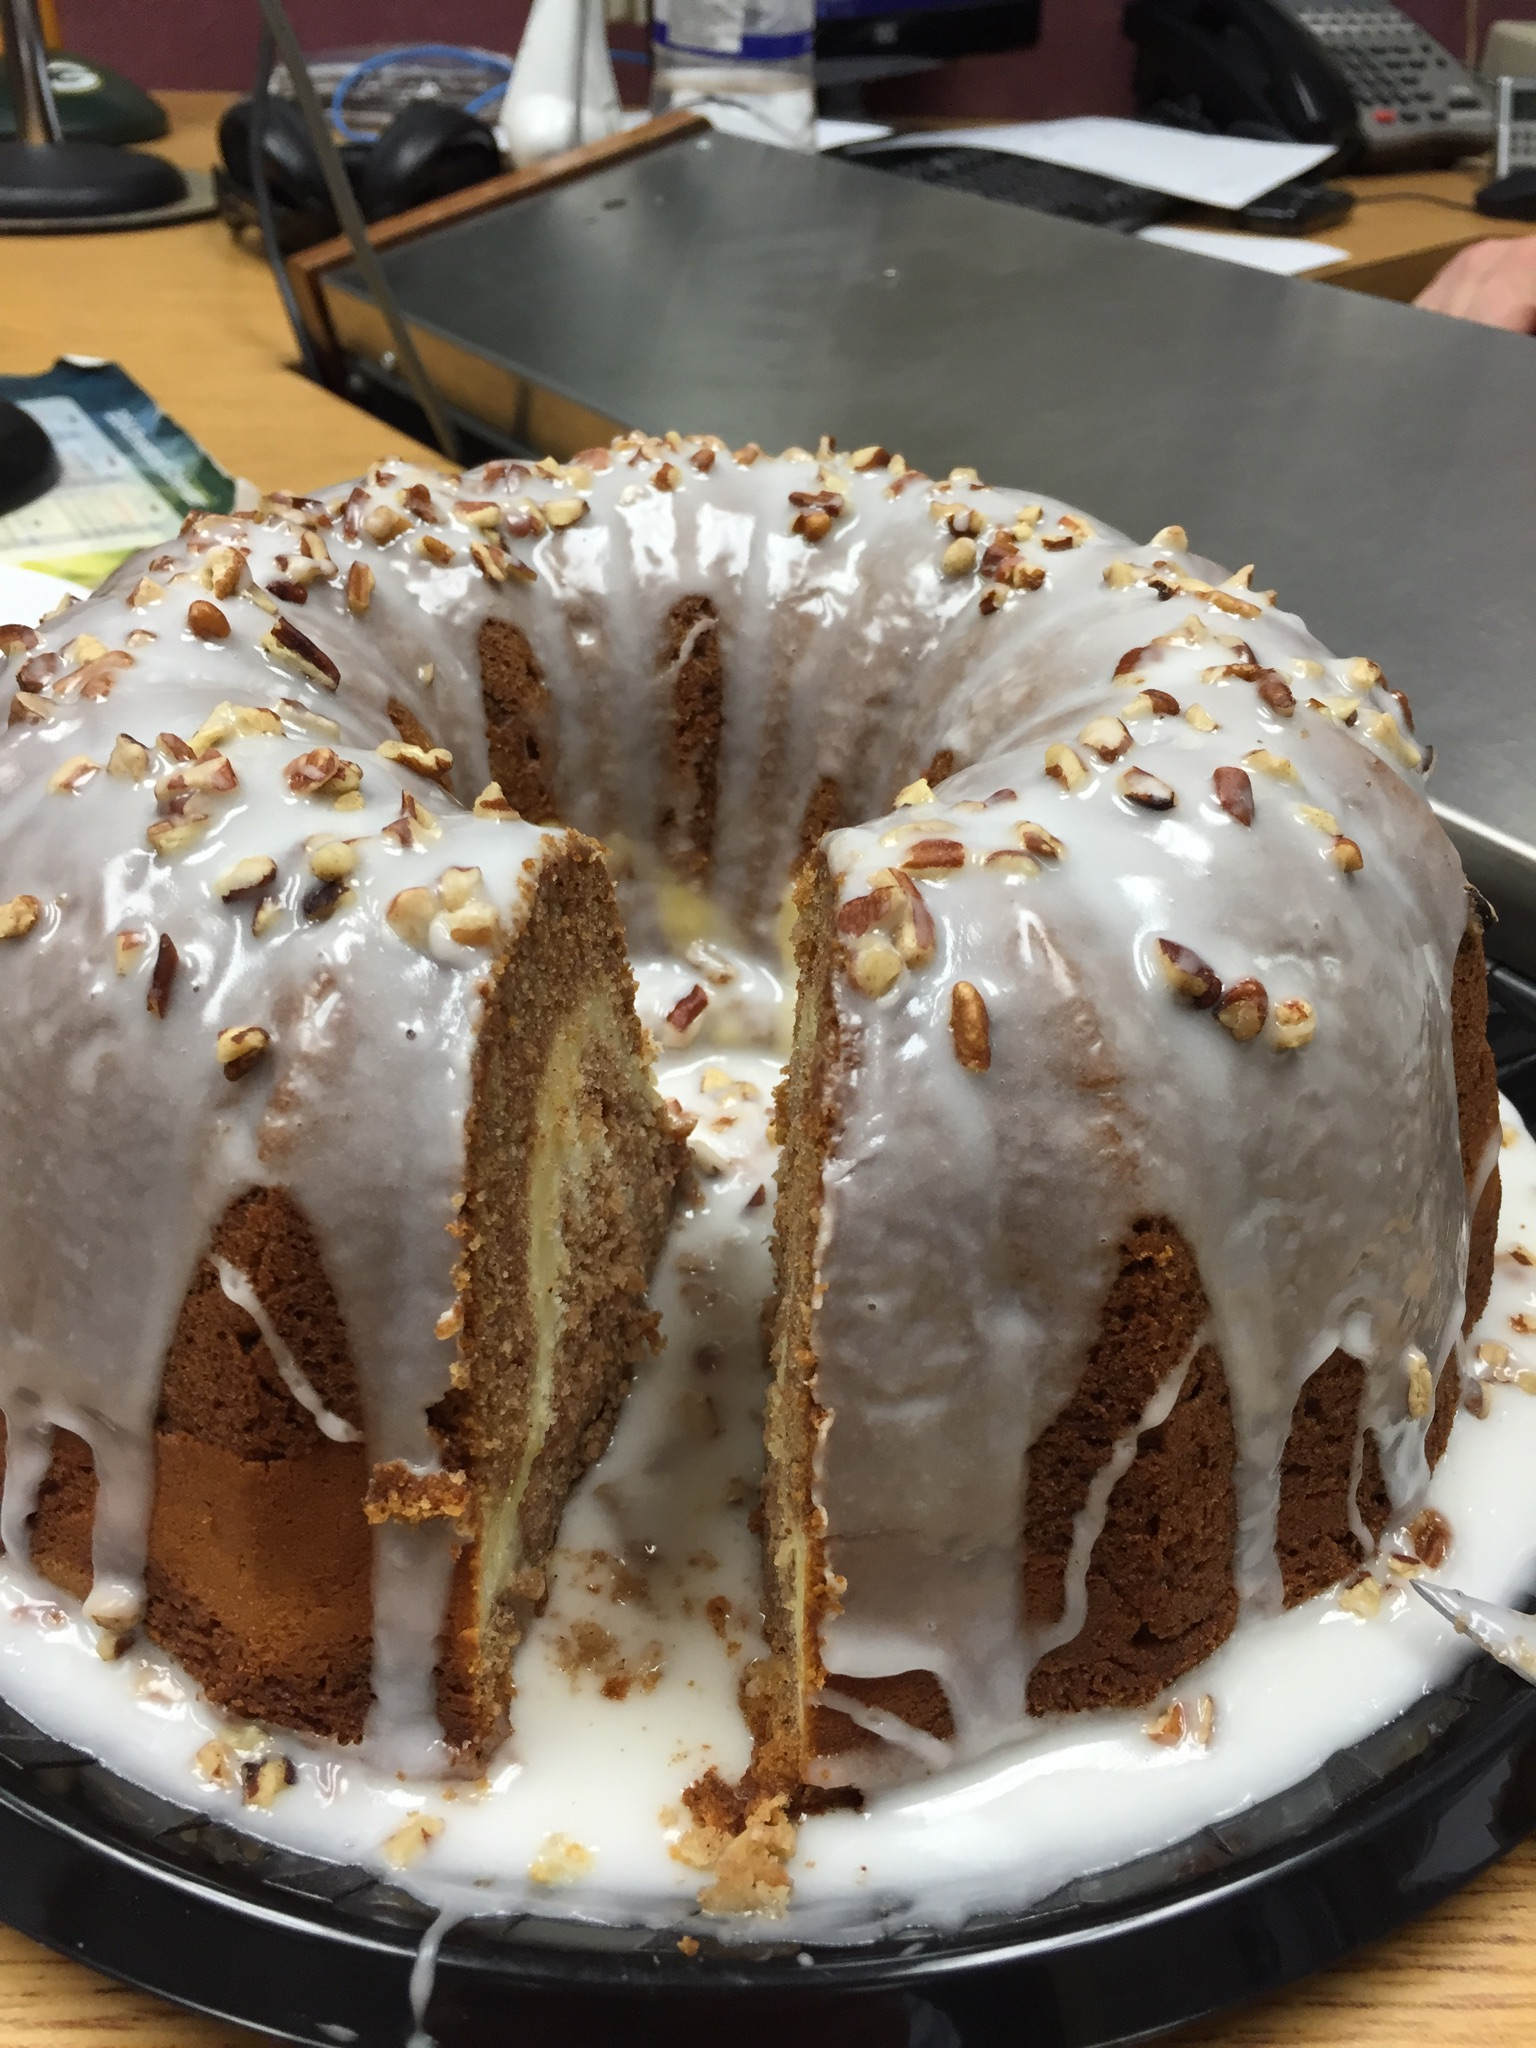 Apple Cream Cheese Swirl Bundt Cake 9/16/2016 | WDAN-AM